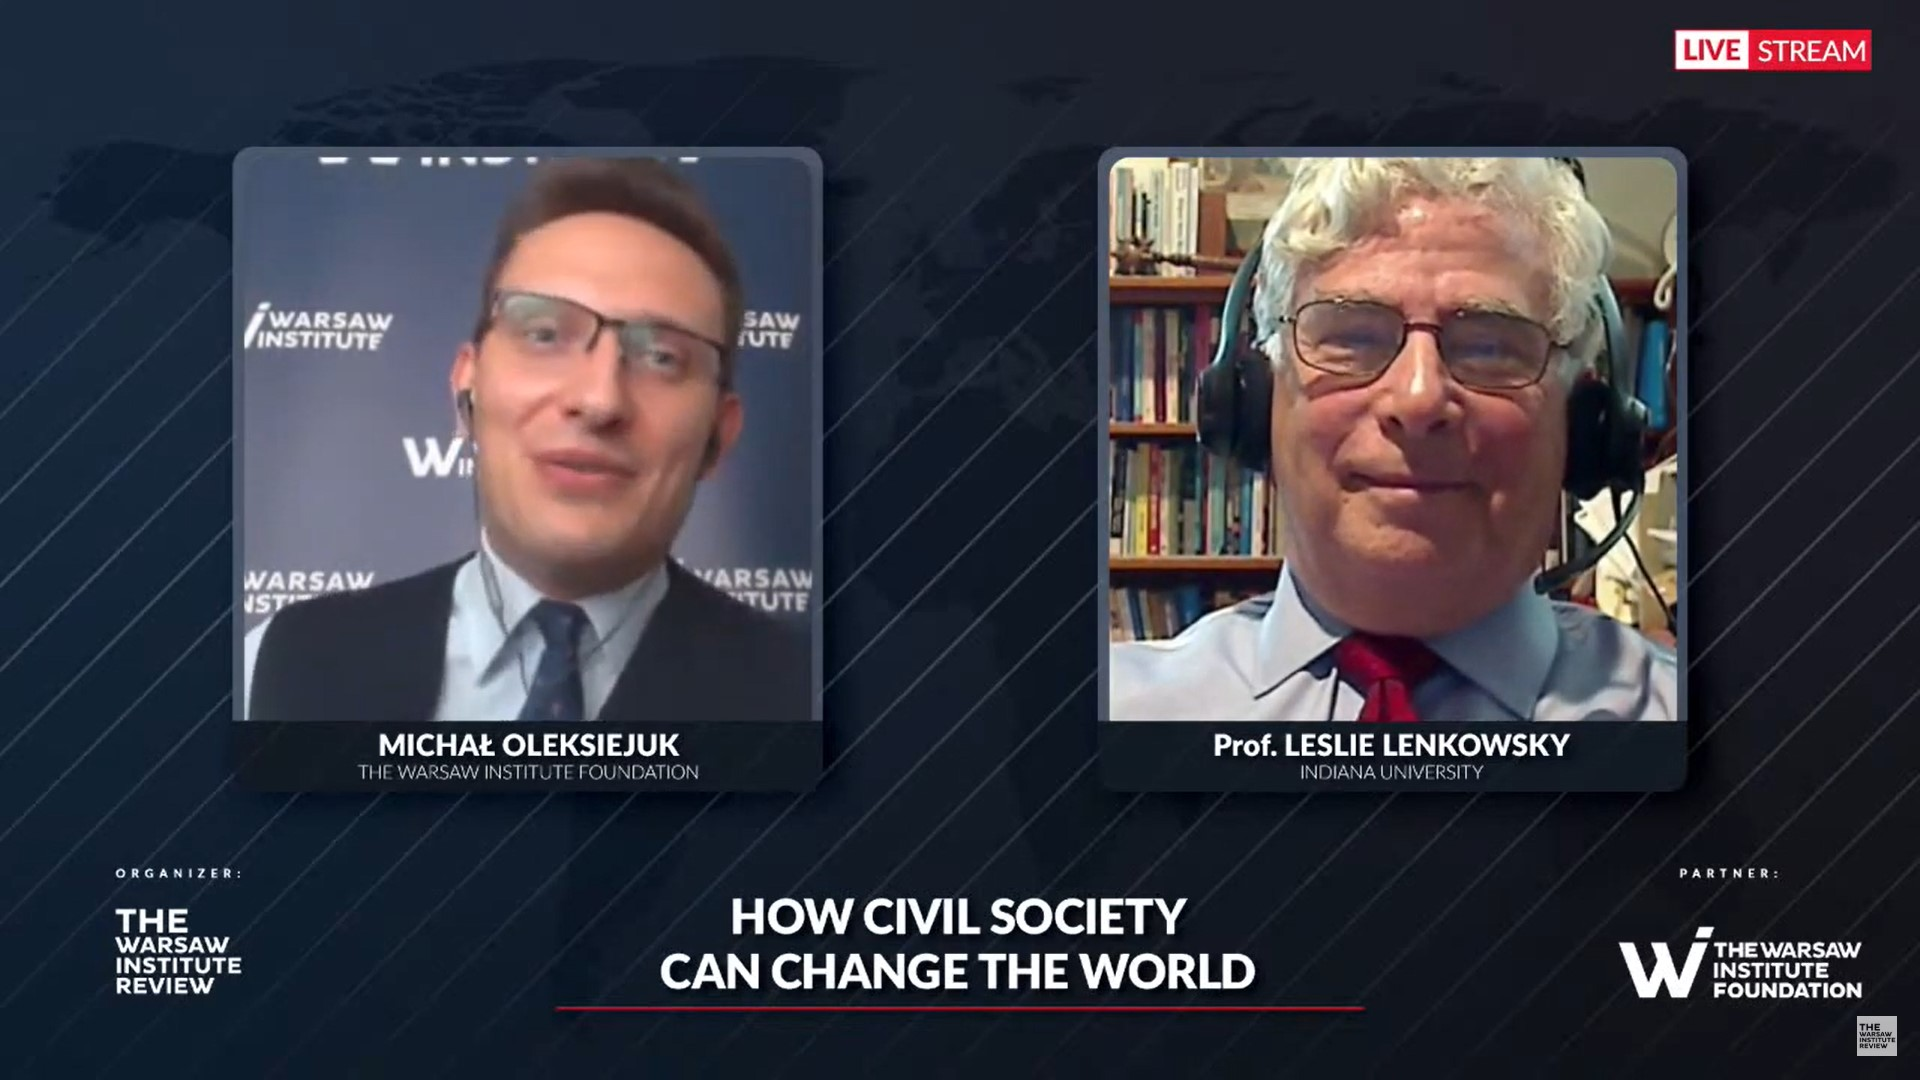 Video recording: How can civil society change the world?